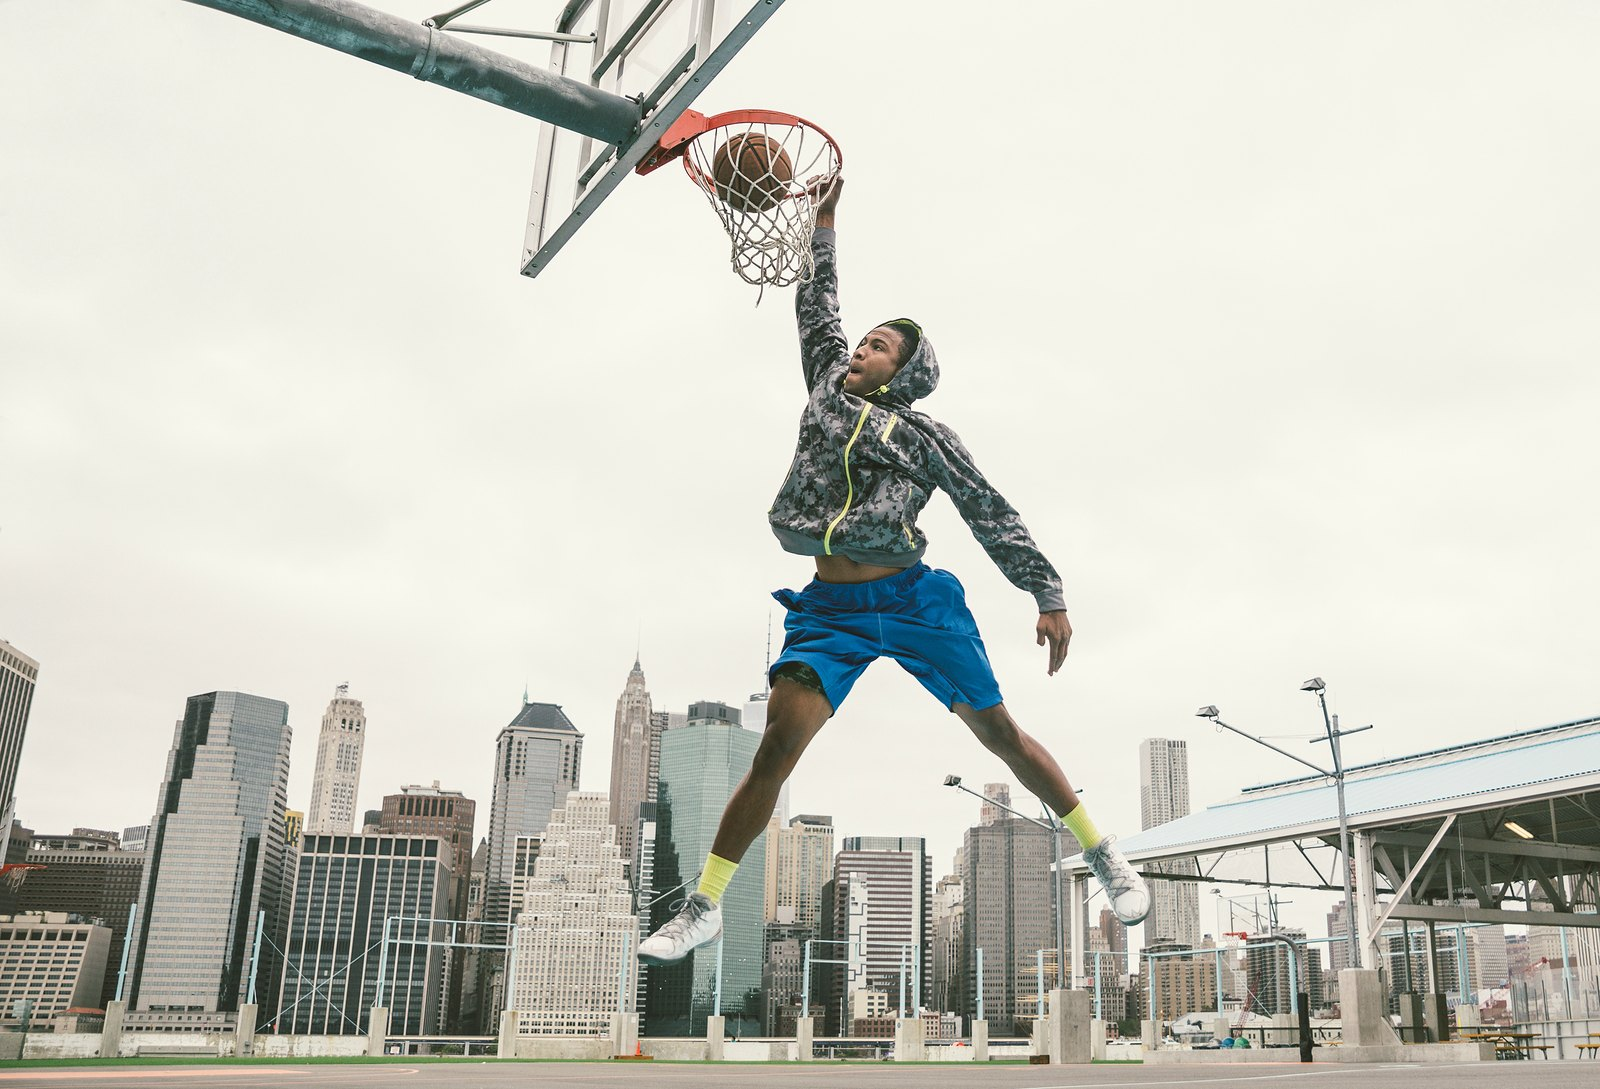 Get Playing Basketball and Slam Dunking With Friends and Burn Off Some Calories